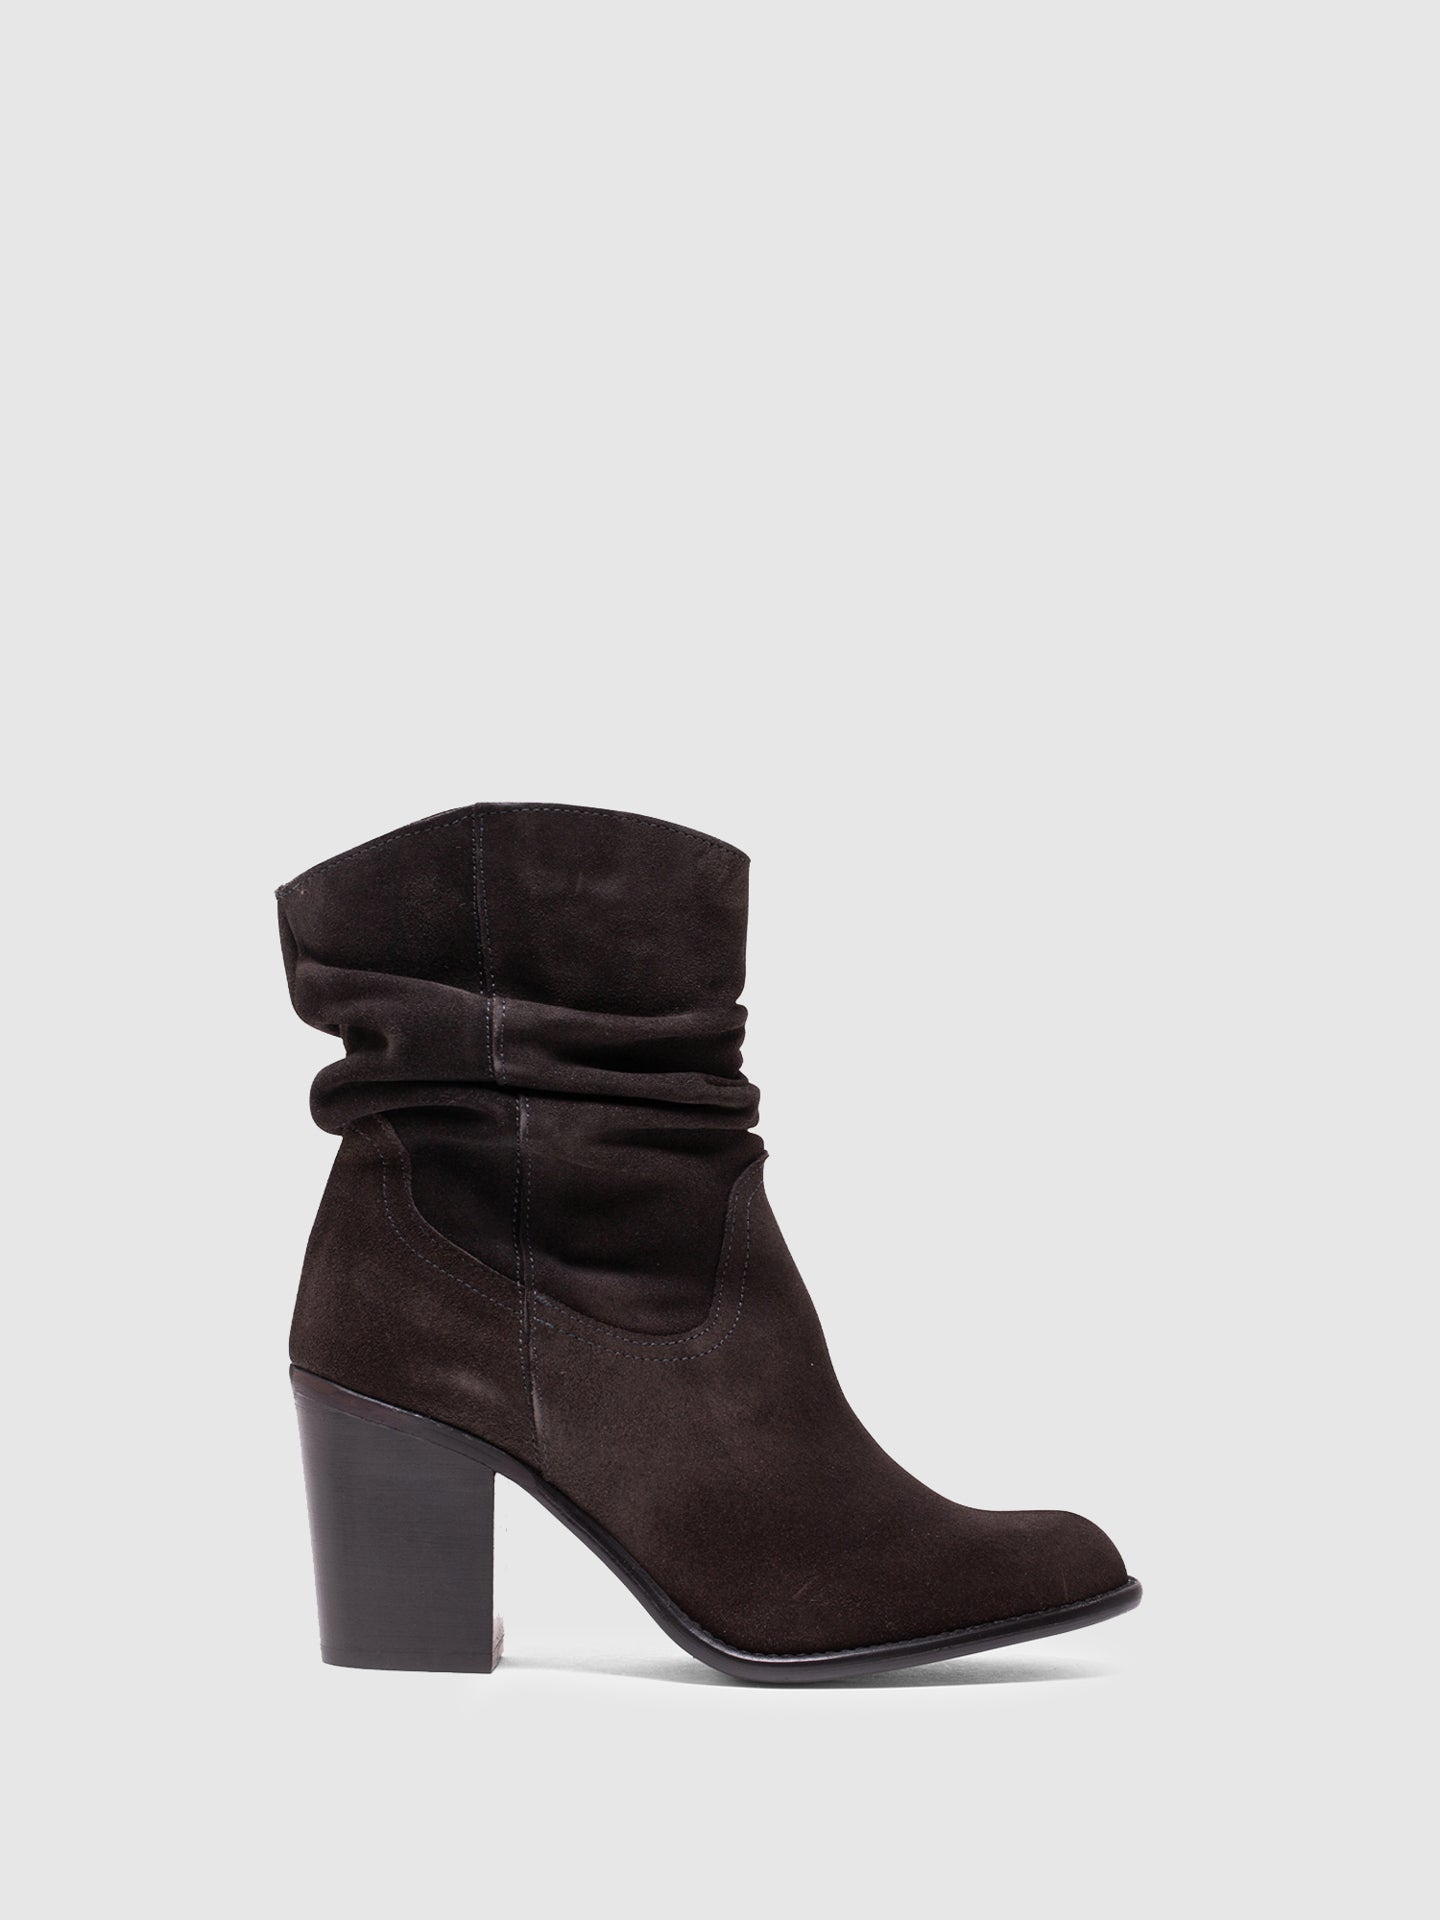 MARILA SHOES DarkGray Pointed Toe Boots